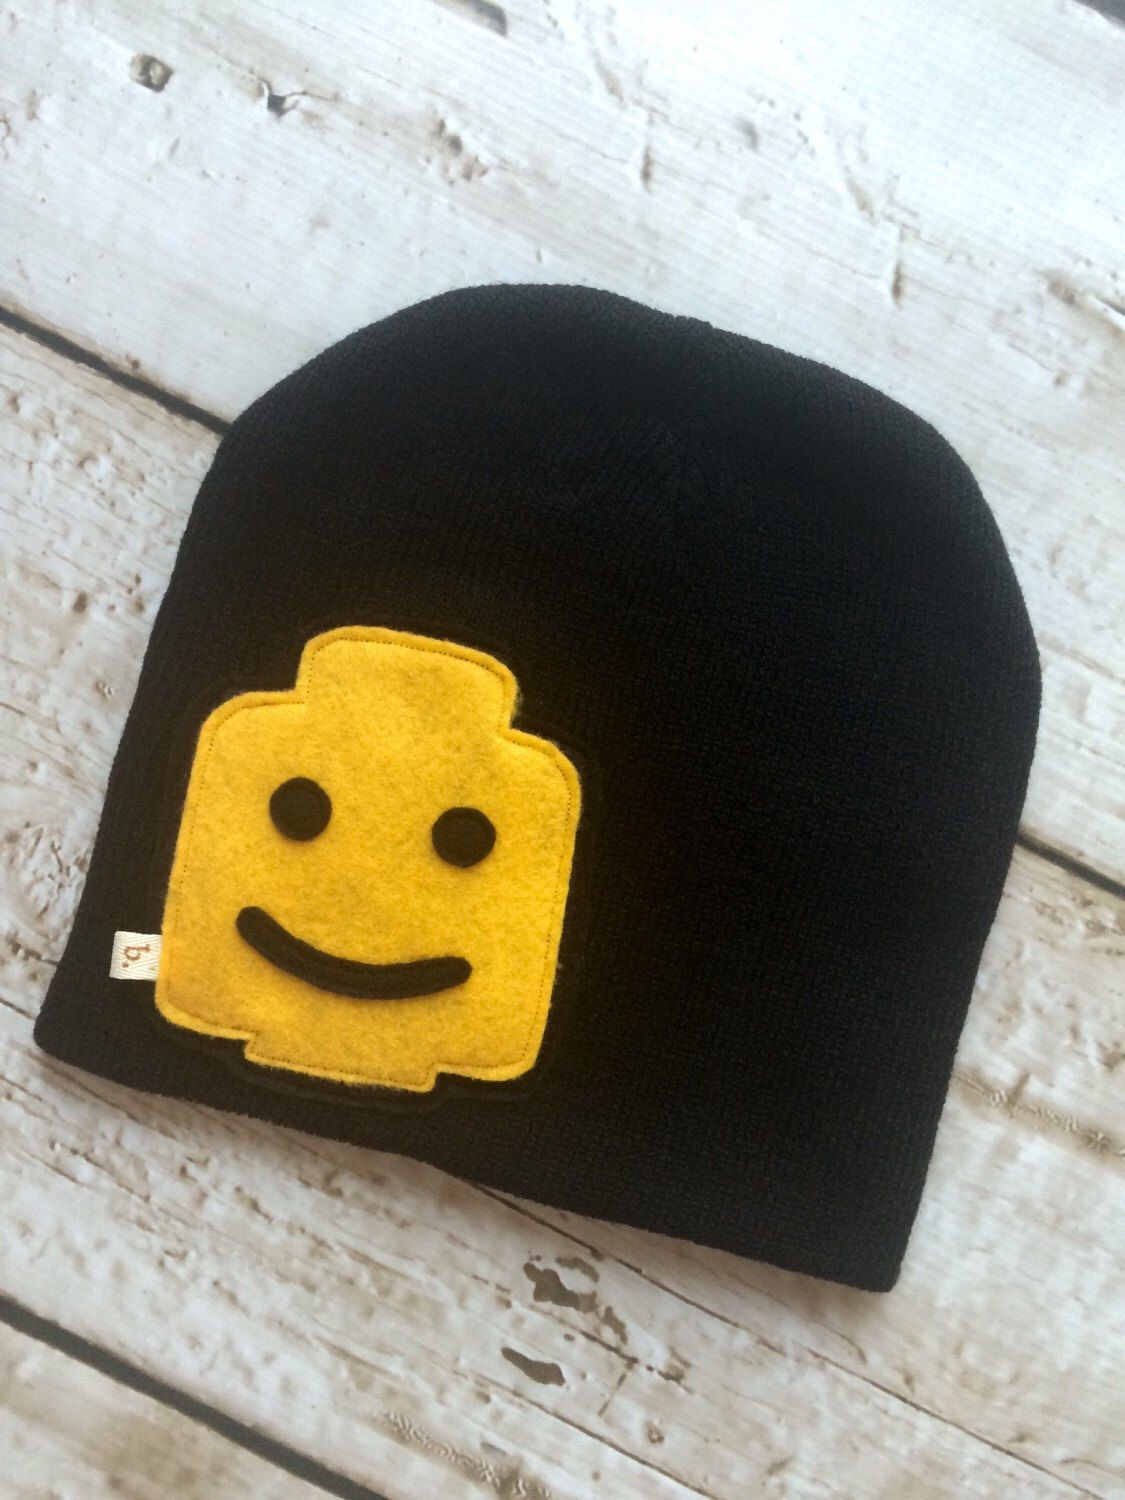 Lego Man Inspired Child/ Youth Black Knit Hat by letterbdesigns on Etsy https://www.etsy.com/listing/248897640/lego-man-inspired-child-youth-black-knit